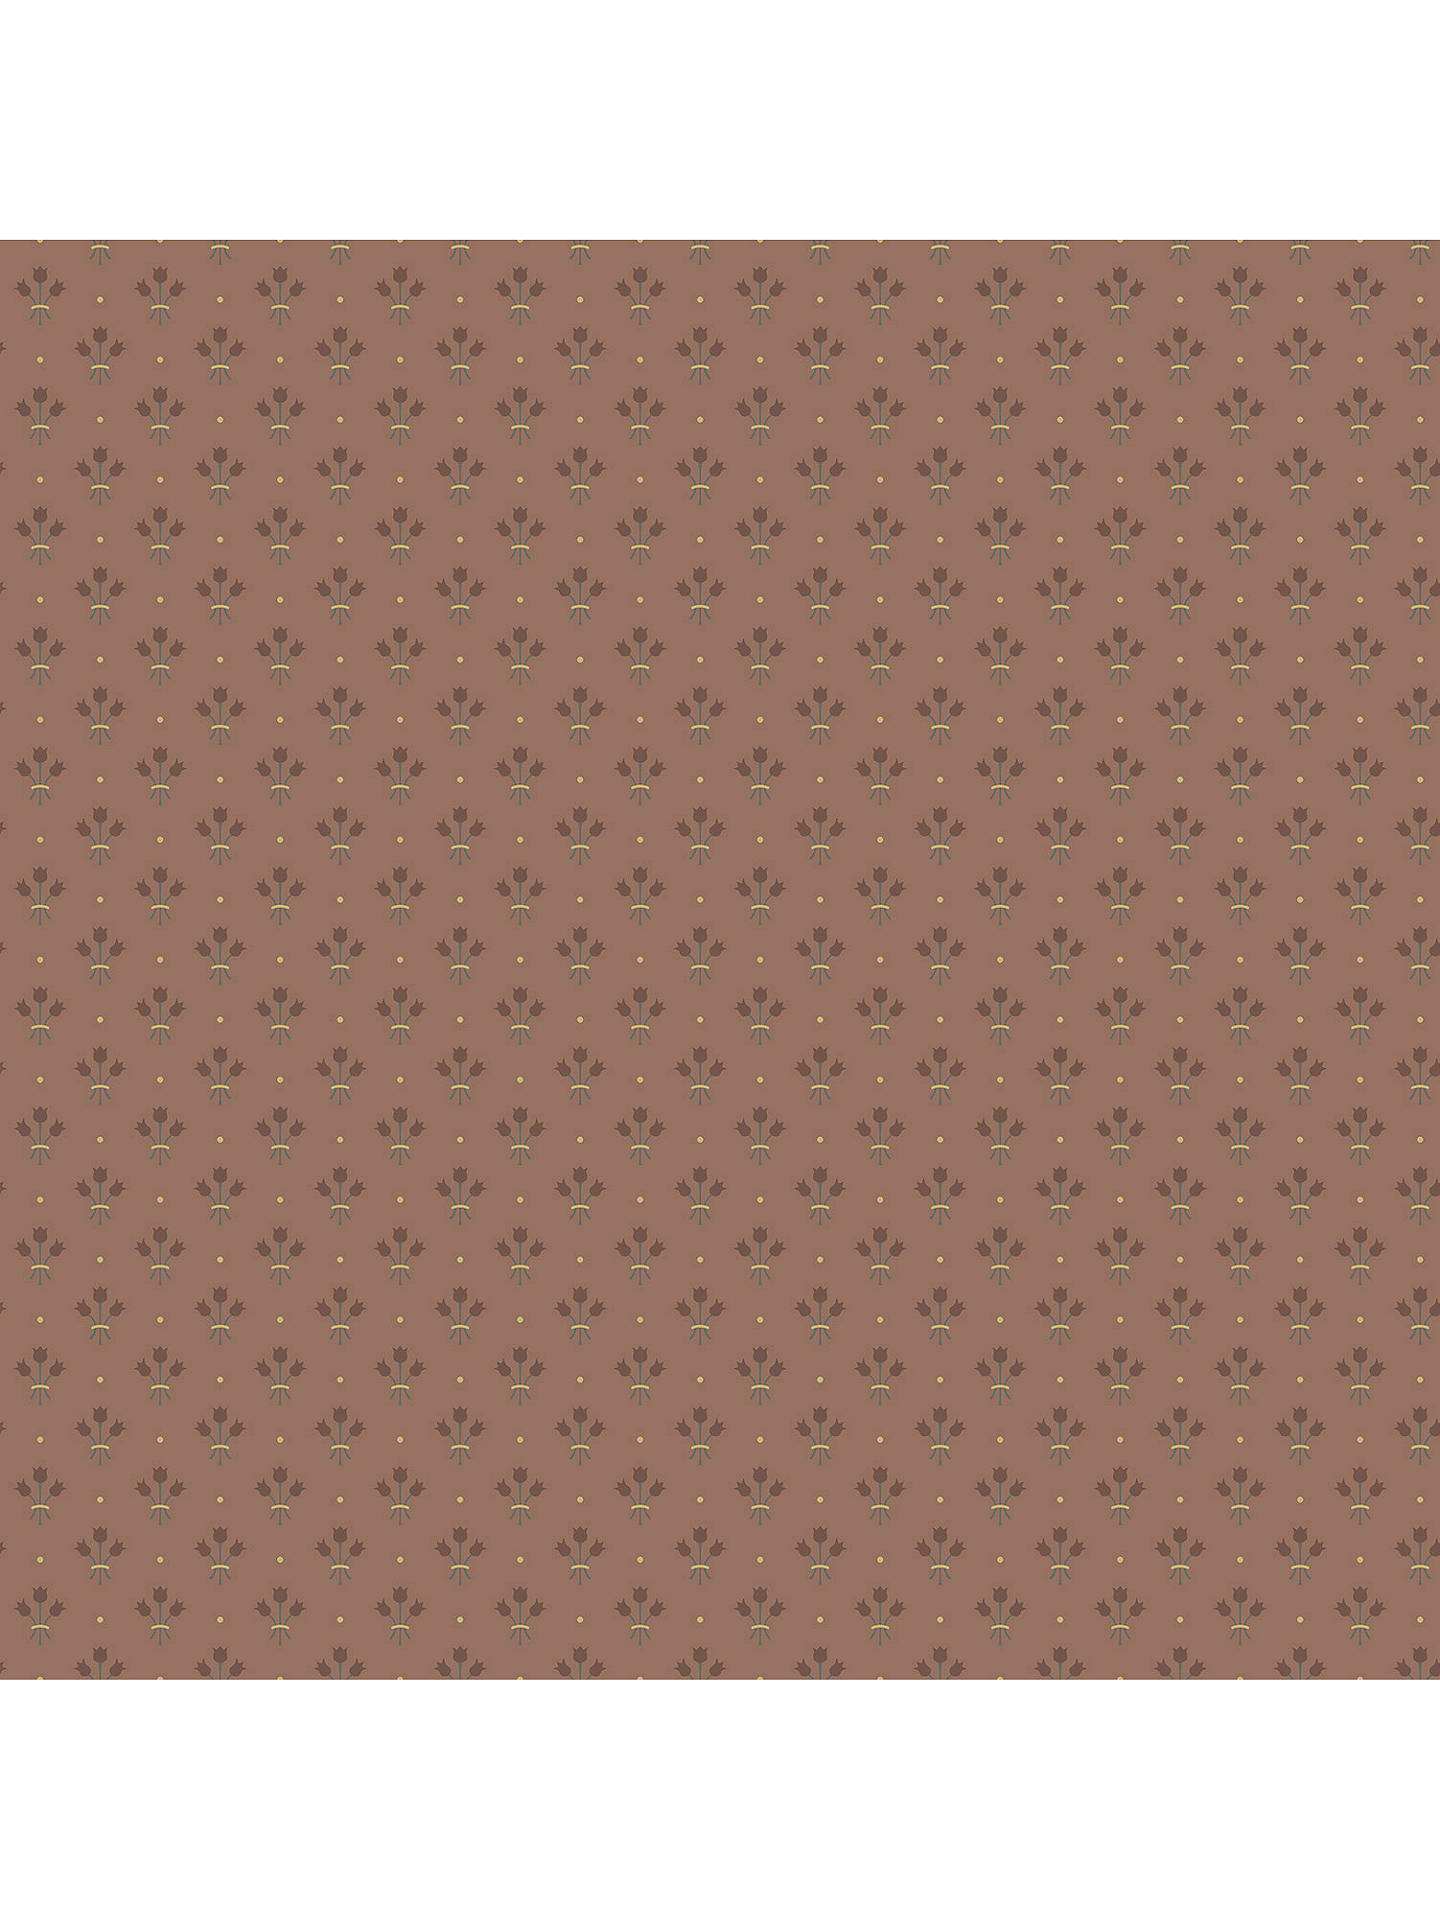 Buy Galerie Mini Tulip Motif Wallpaper, 33028 Online at johnlewis.com